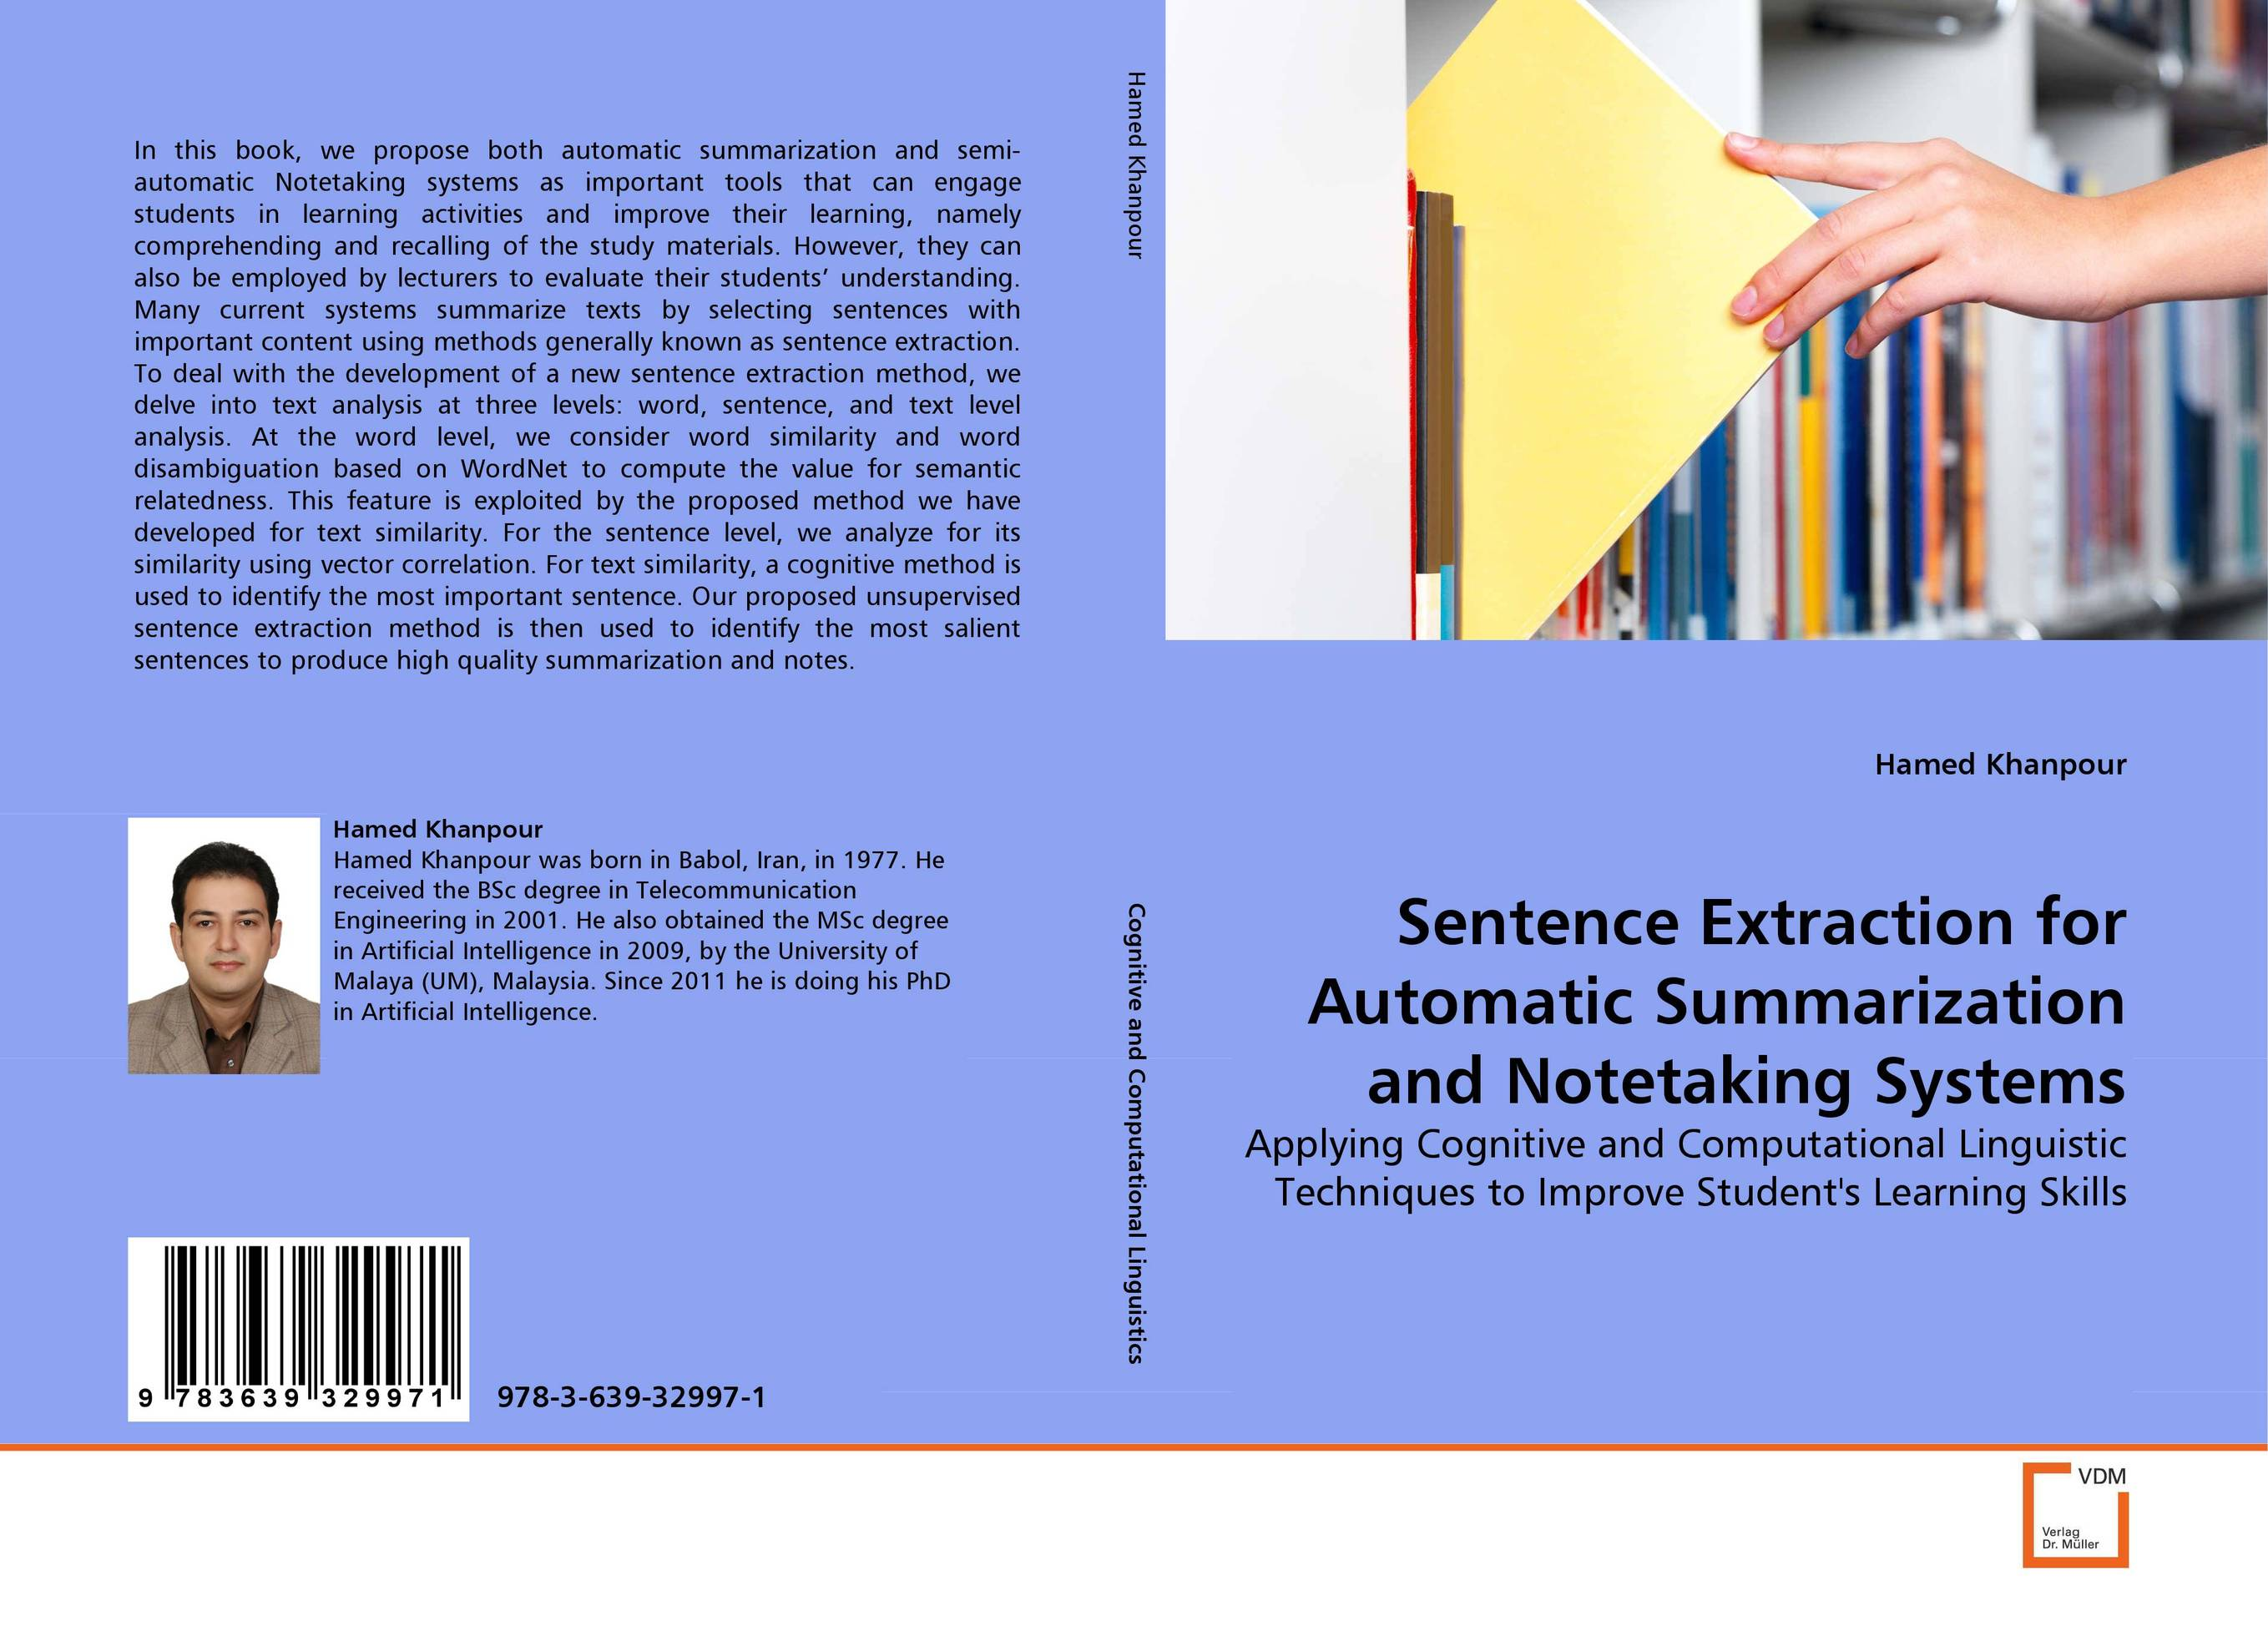 Sentence Extraction for Automatic Summarization and Notetaking Systems automatic text summarization by extracting significant sentences